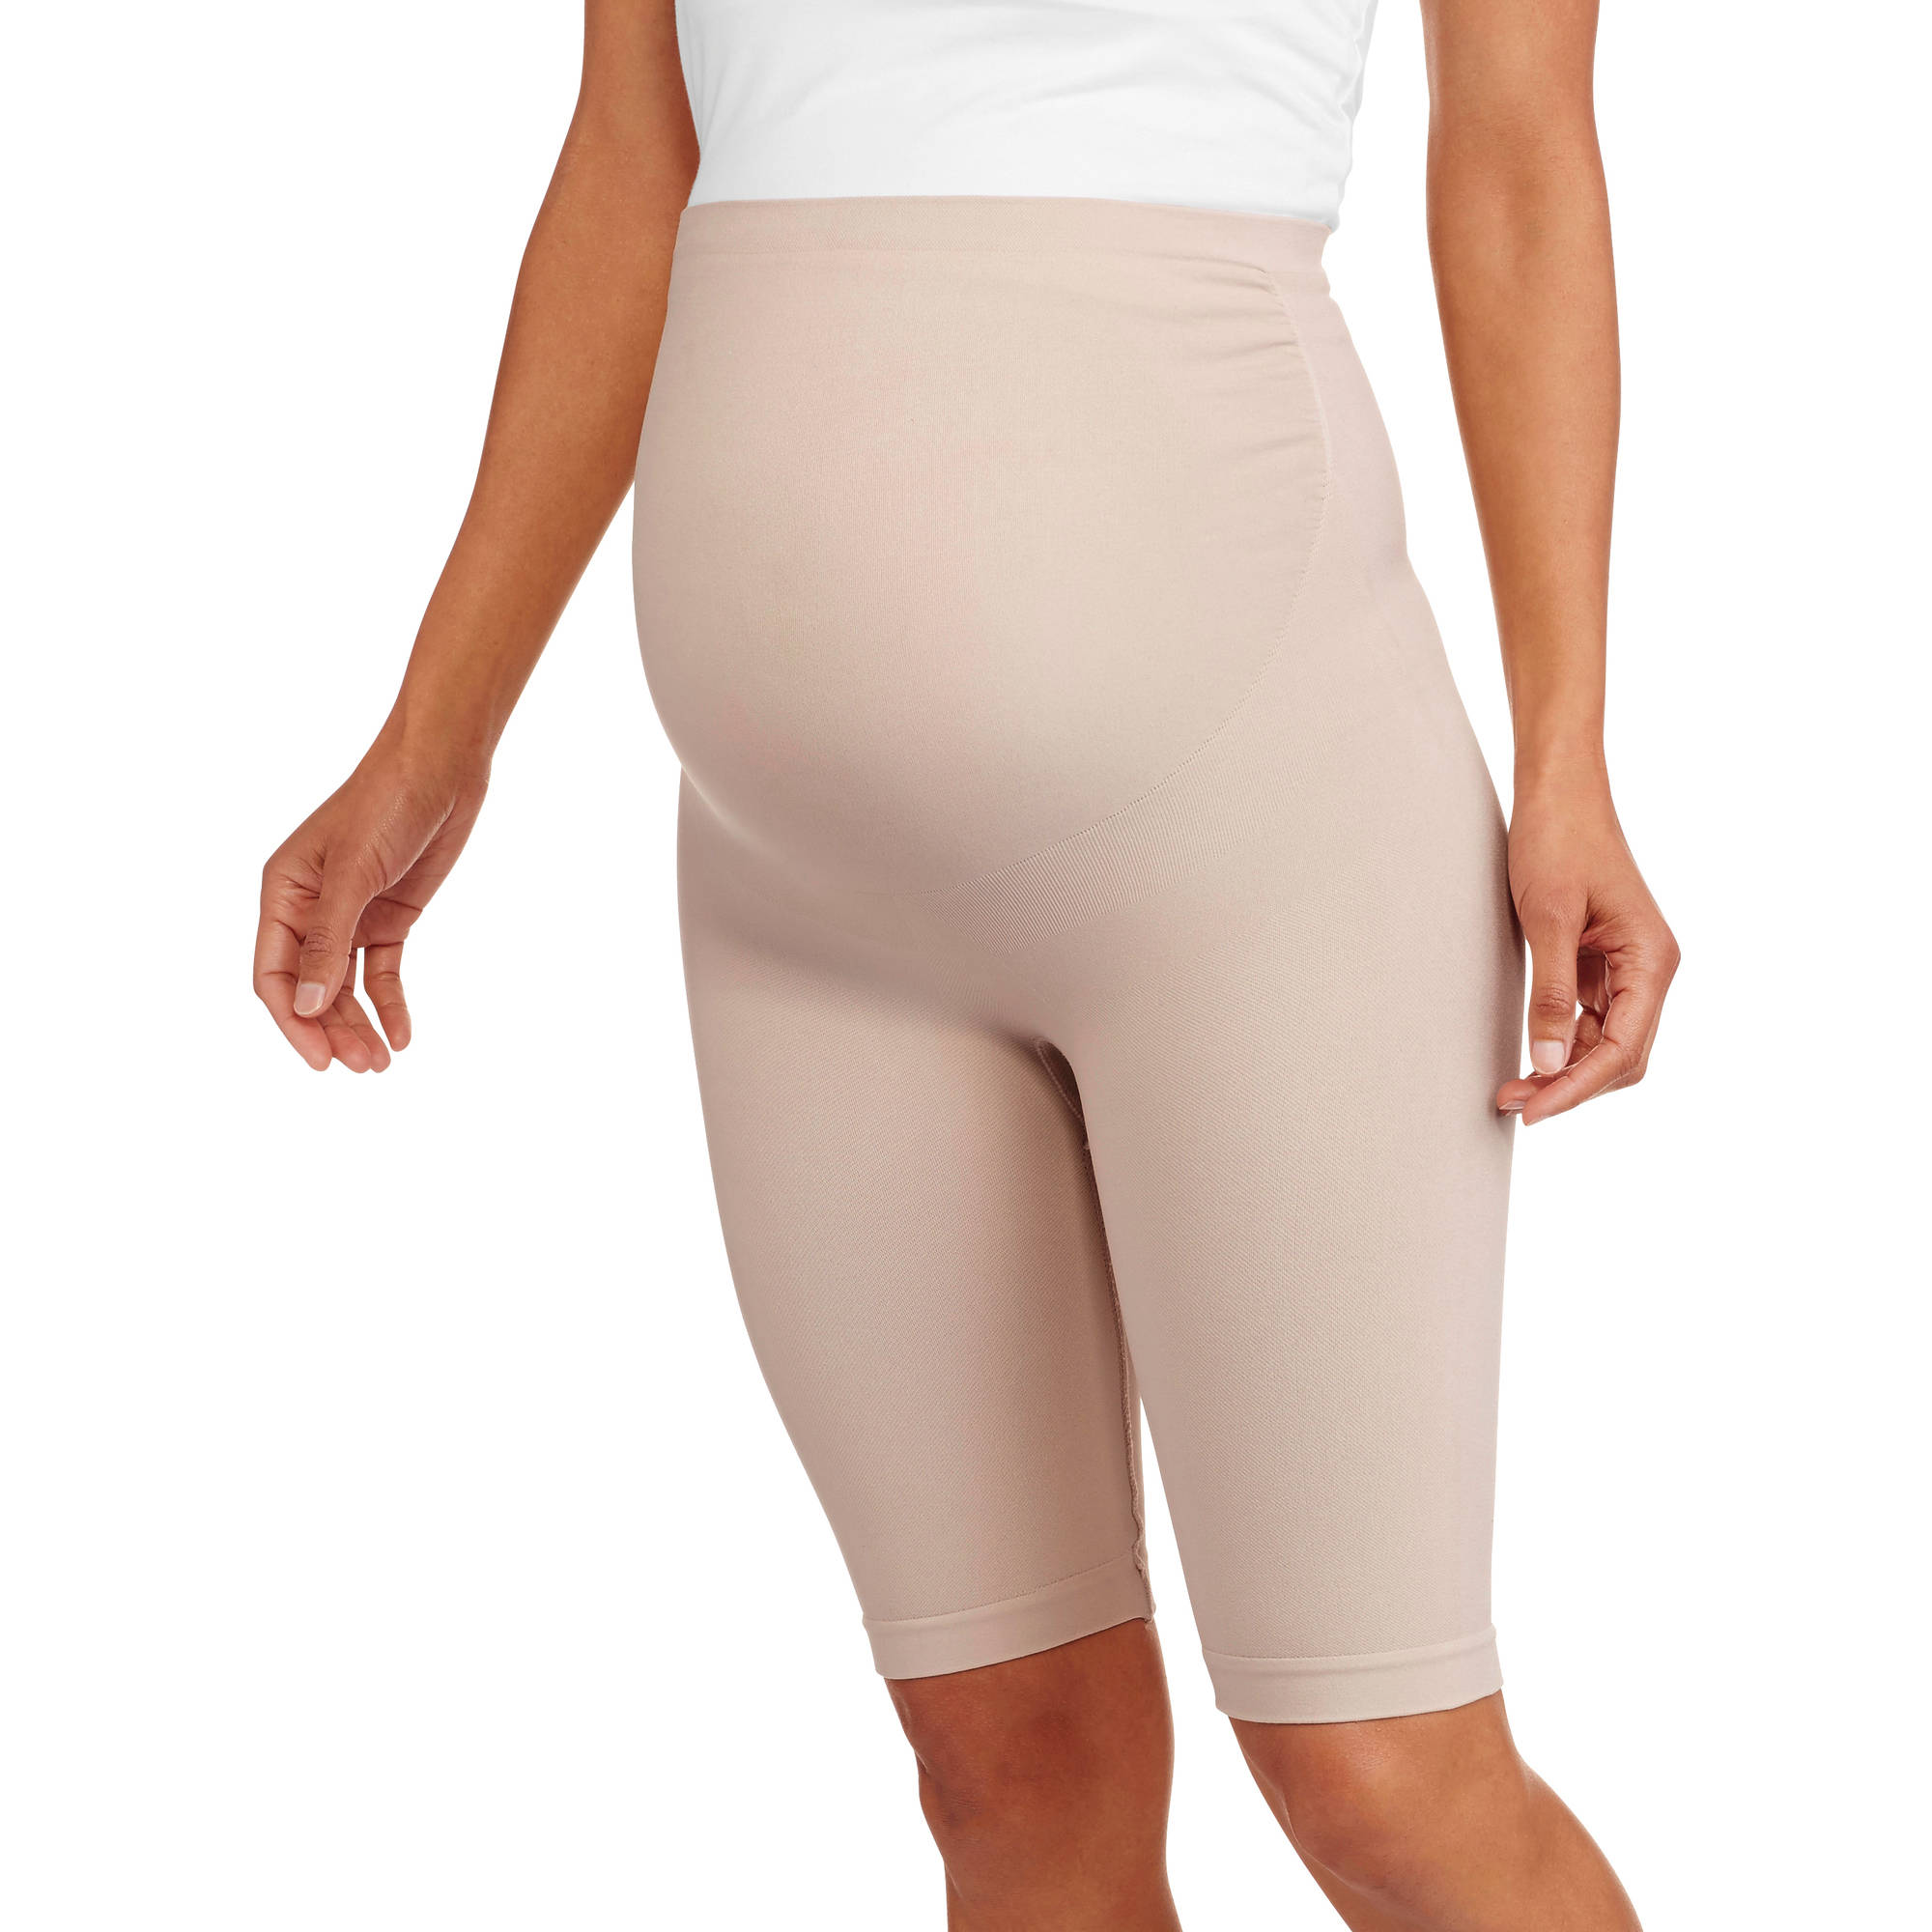 """Nurture by Lamaze Maternity Over-the-Belly 9"""" Seamless Thigh Shaper and Support"""